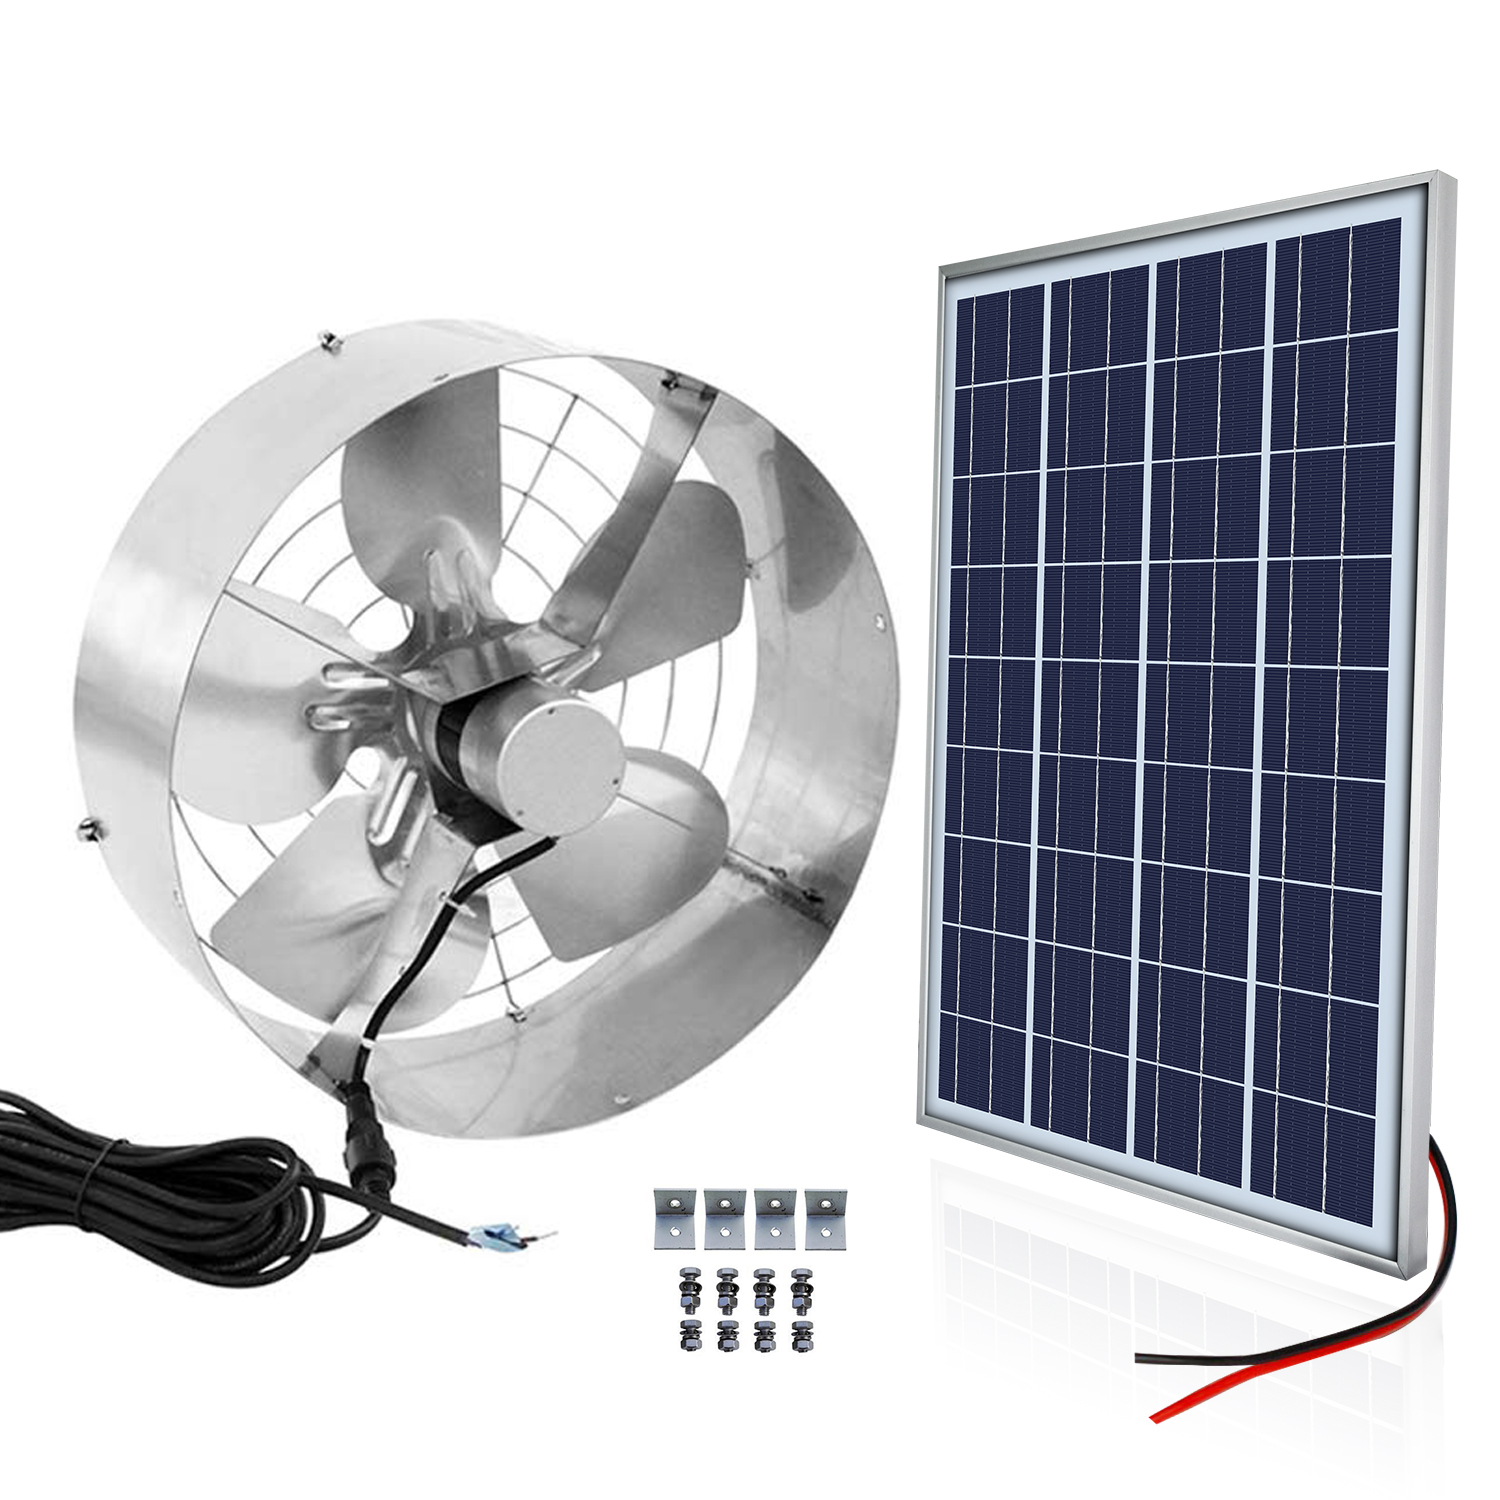 DC 12V 3000 CFM Commercial Industrial Extractor 65W Ventilator Gable Roof Cooling Vent Fan 25W Solar Panel For Home Ranch